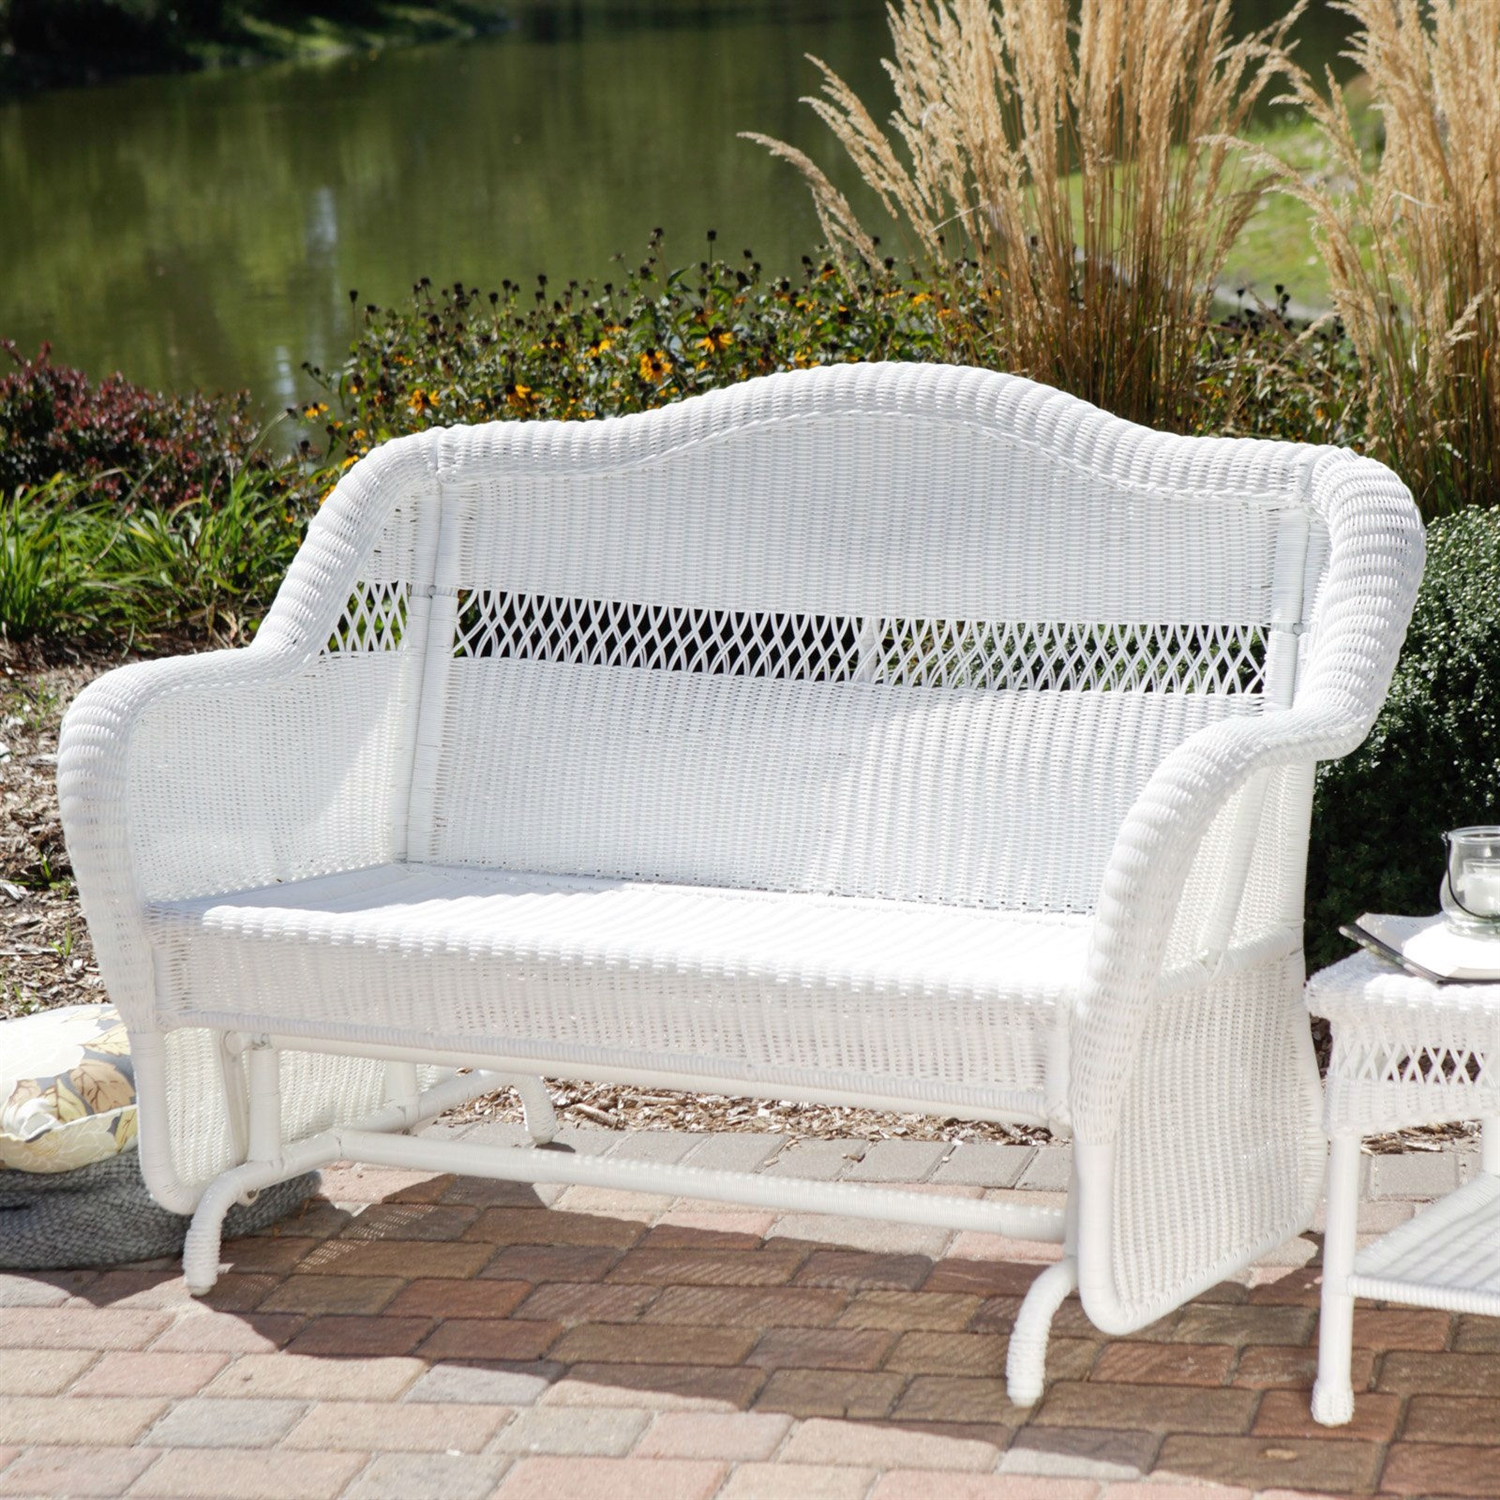 Strange White Resin Wicker Outdoor 2 Seat Loveseat Glider Bench Patio Armchair Lamtechconsult Wood Chair Design Ideas Lamtechconsultcom